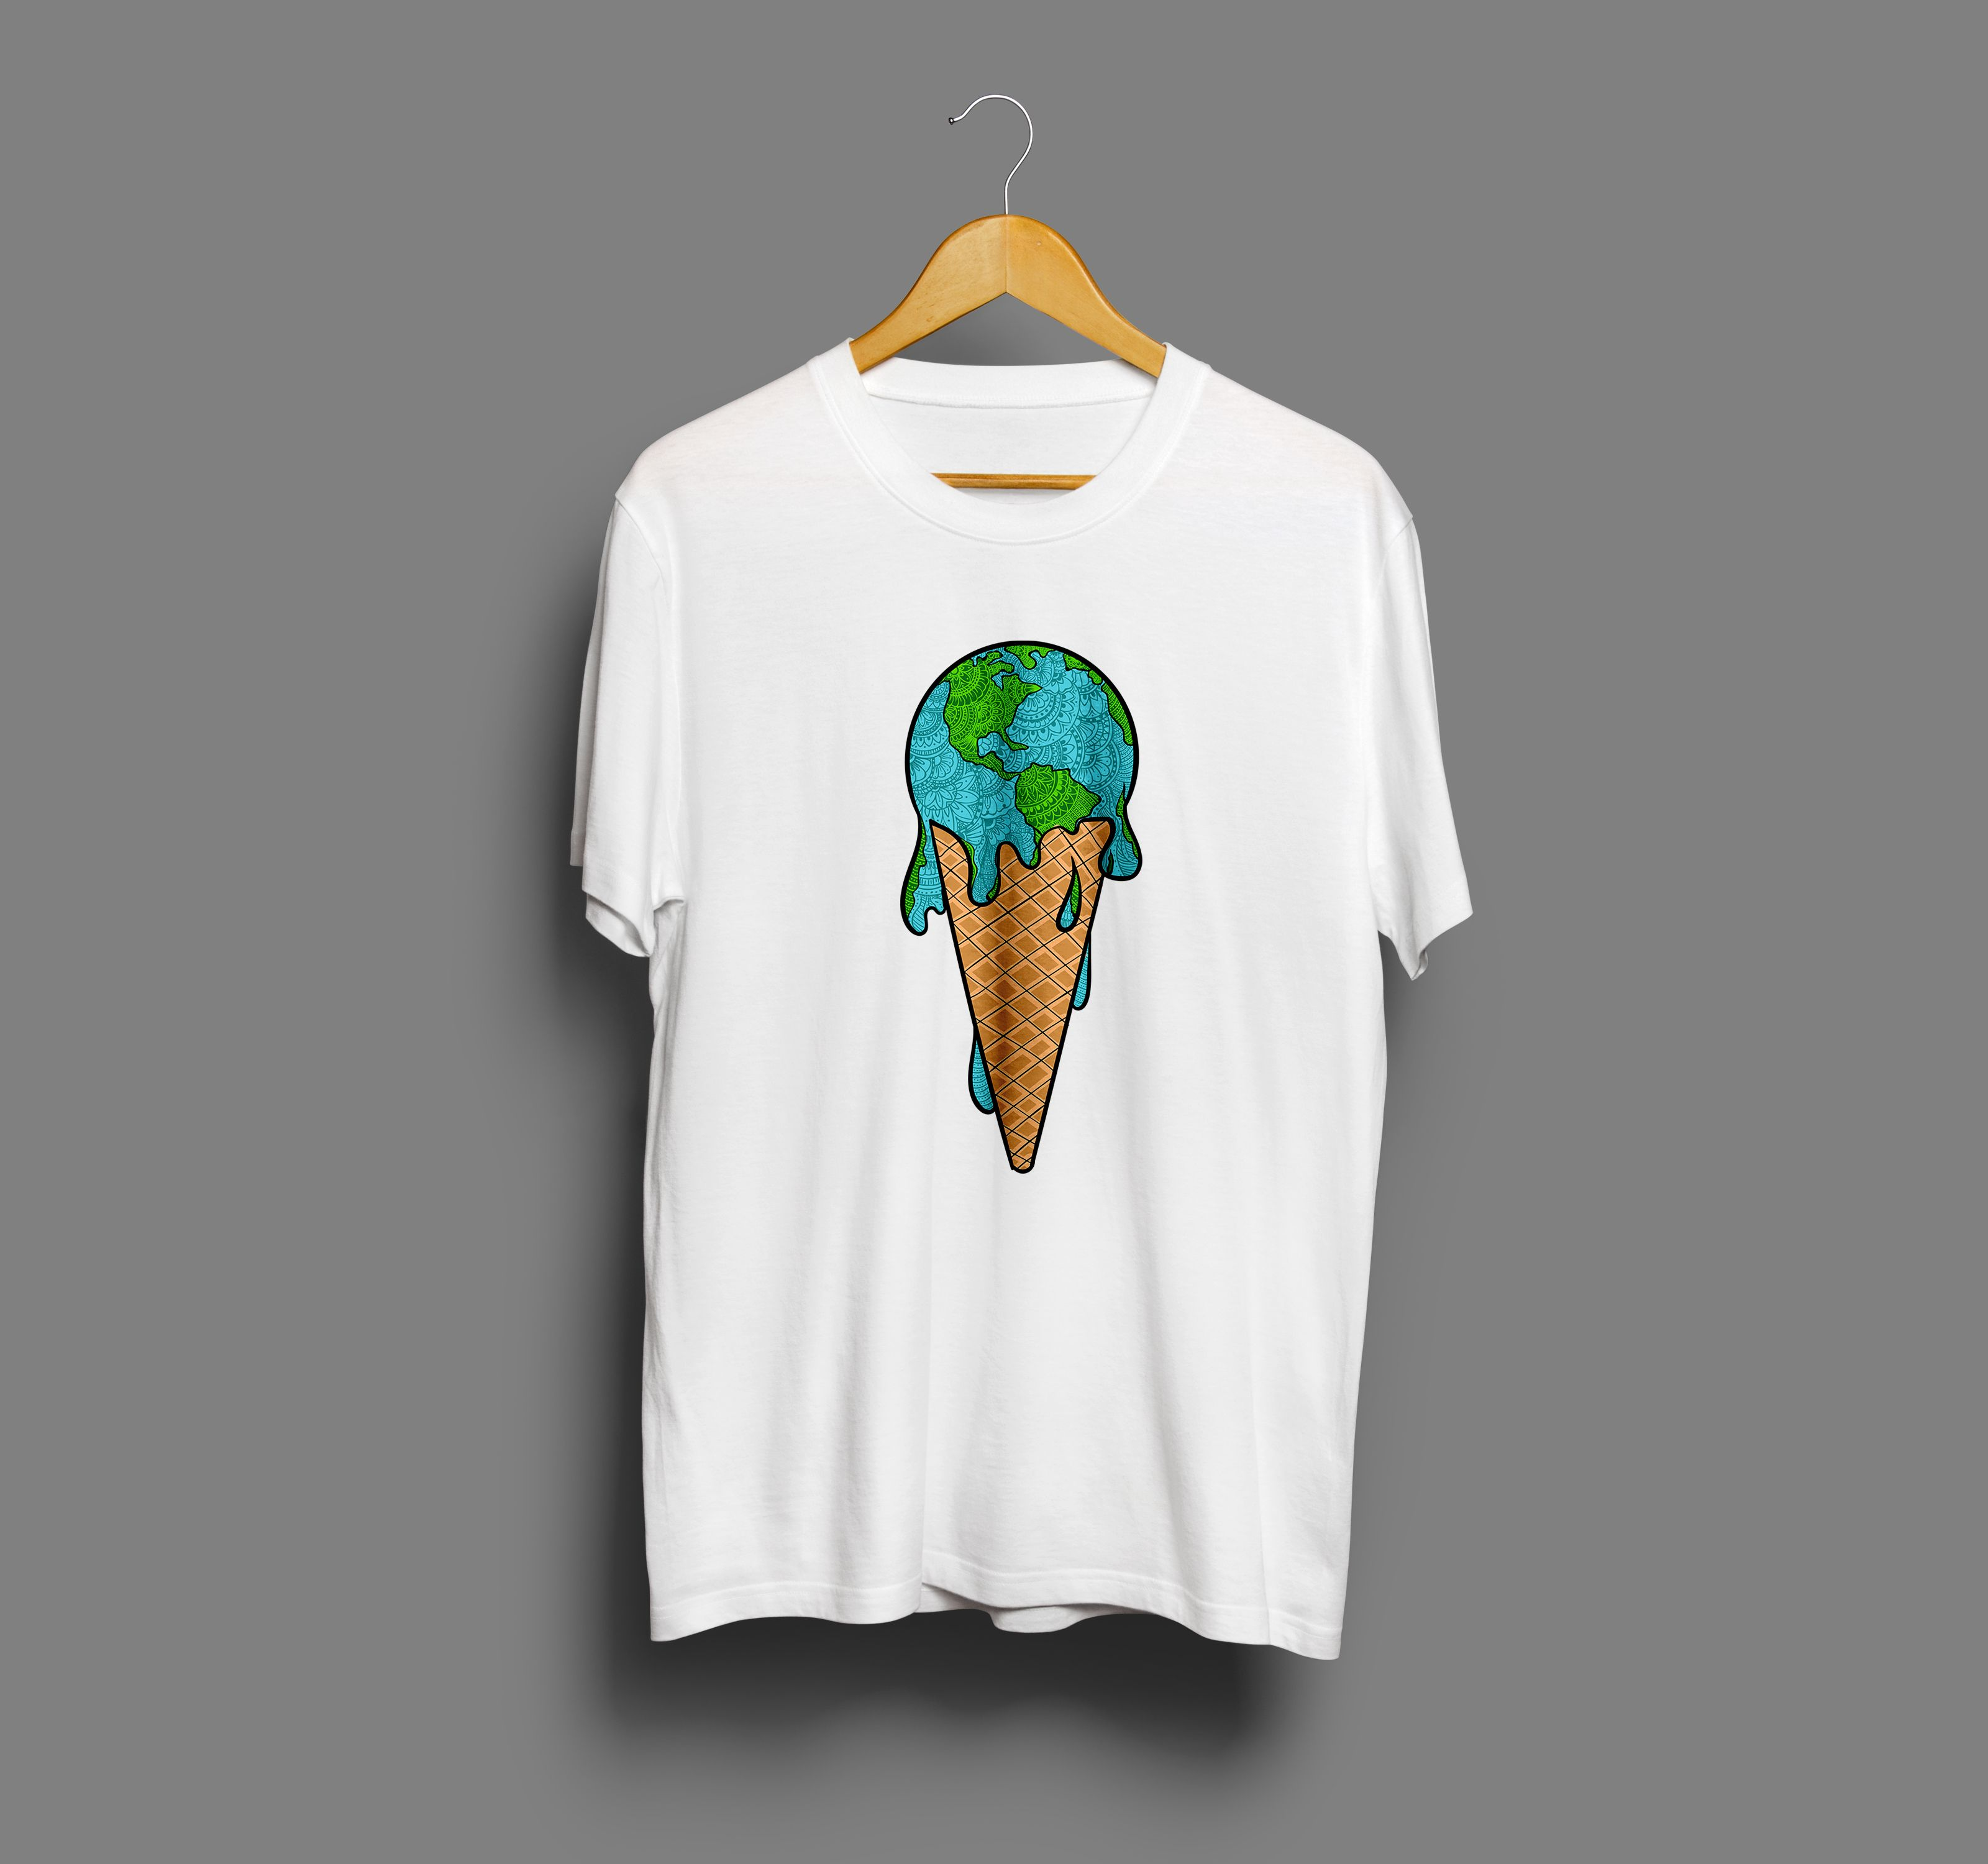 Parthomazi2 I Will Create Beautiful T Shirt Design With Mockup For 5 On Fiverr Com Best T Shirt Designs Shirt Design Inspiration Shirt Logo Design,Hand Family First Tattoo Designs